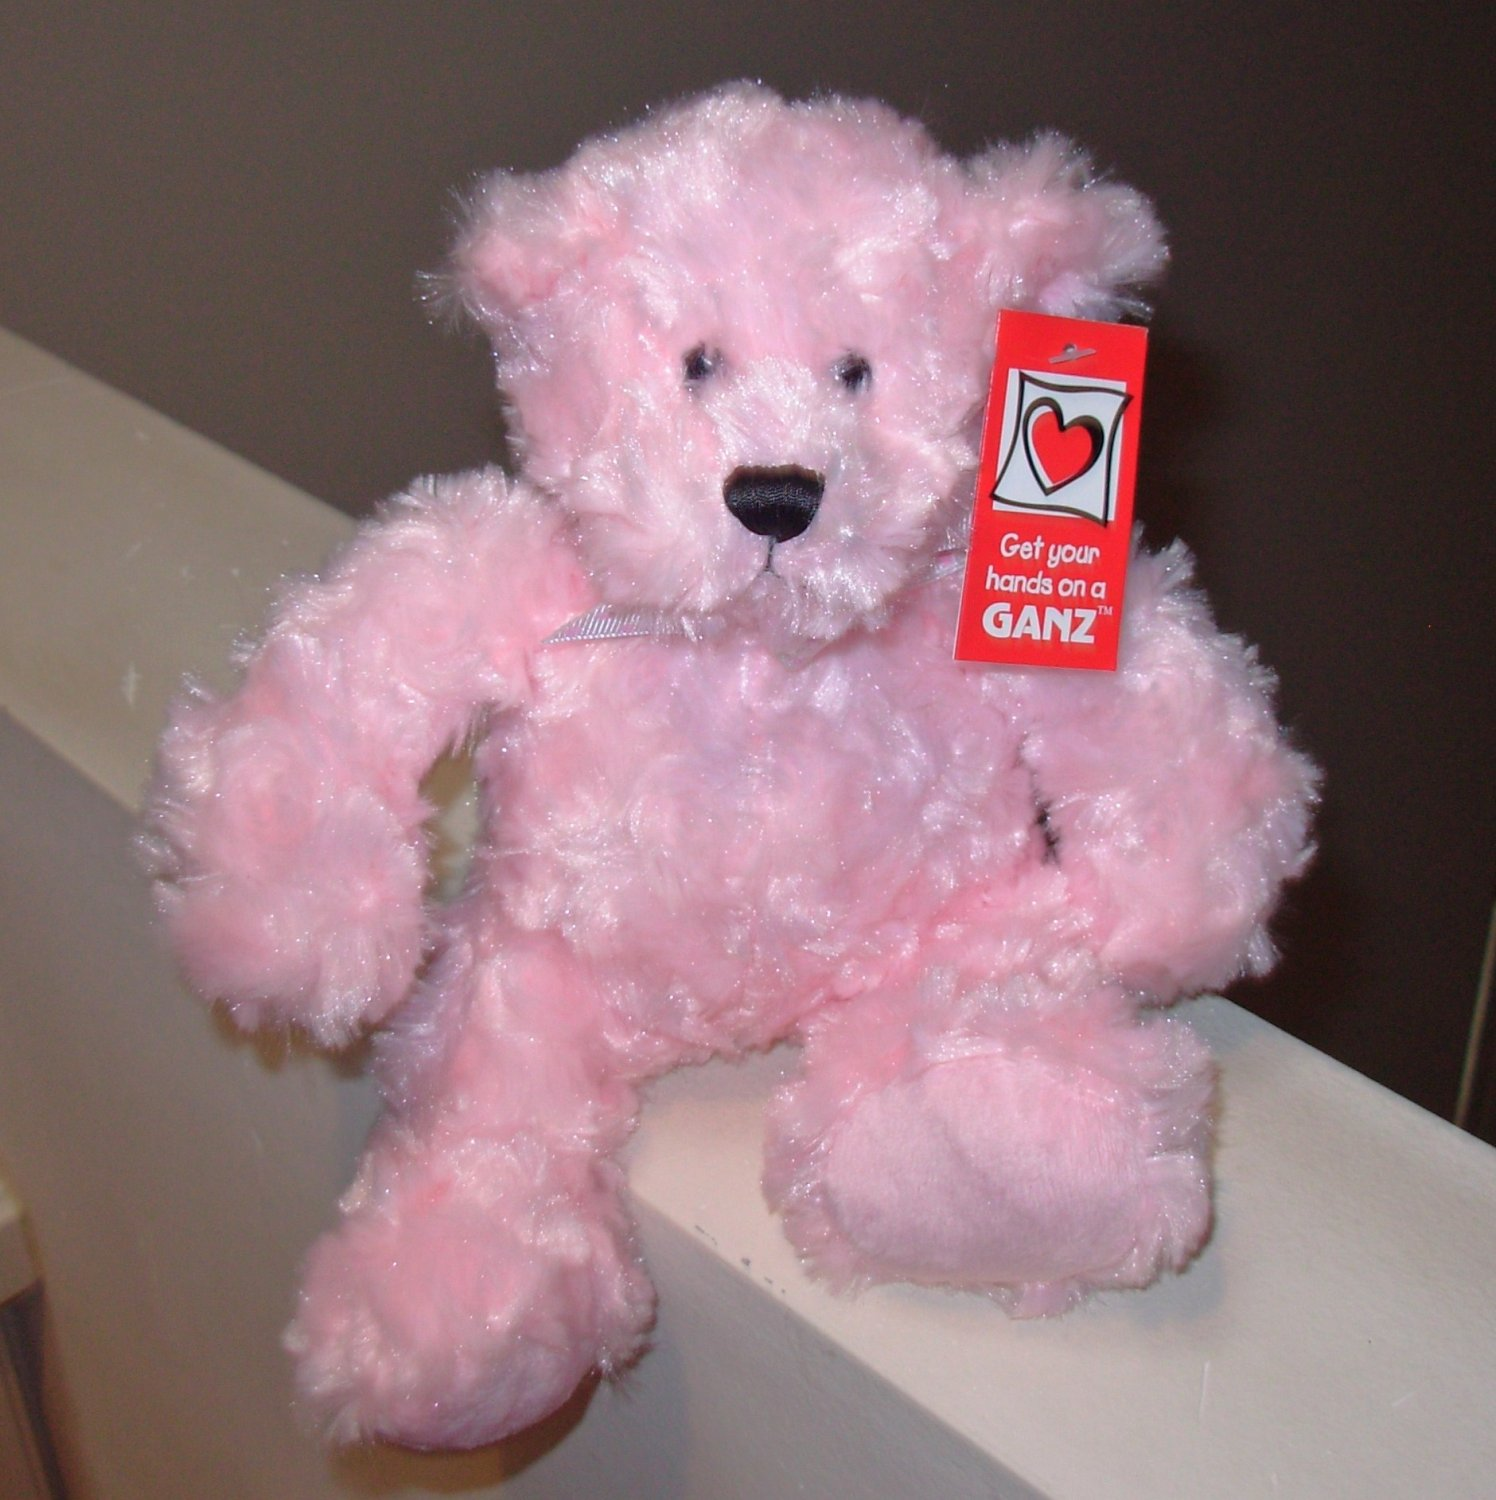 PINK RAINBOW BEAR TEDDYBEAR TEDDY BEAR PLUSH STUFFED ANIMAL NEW GANZ